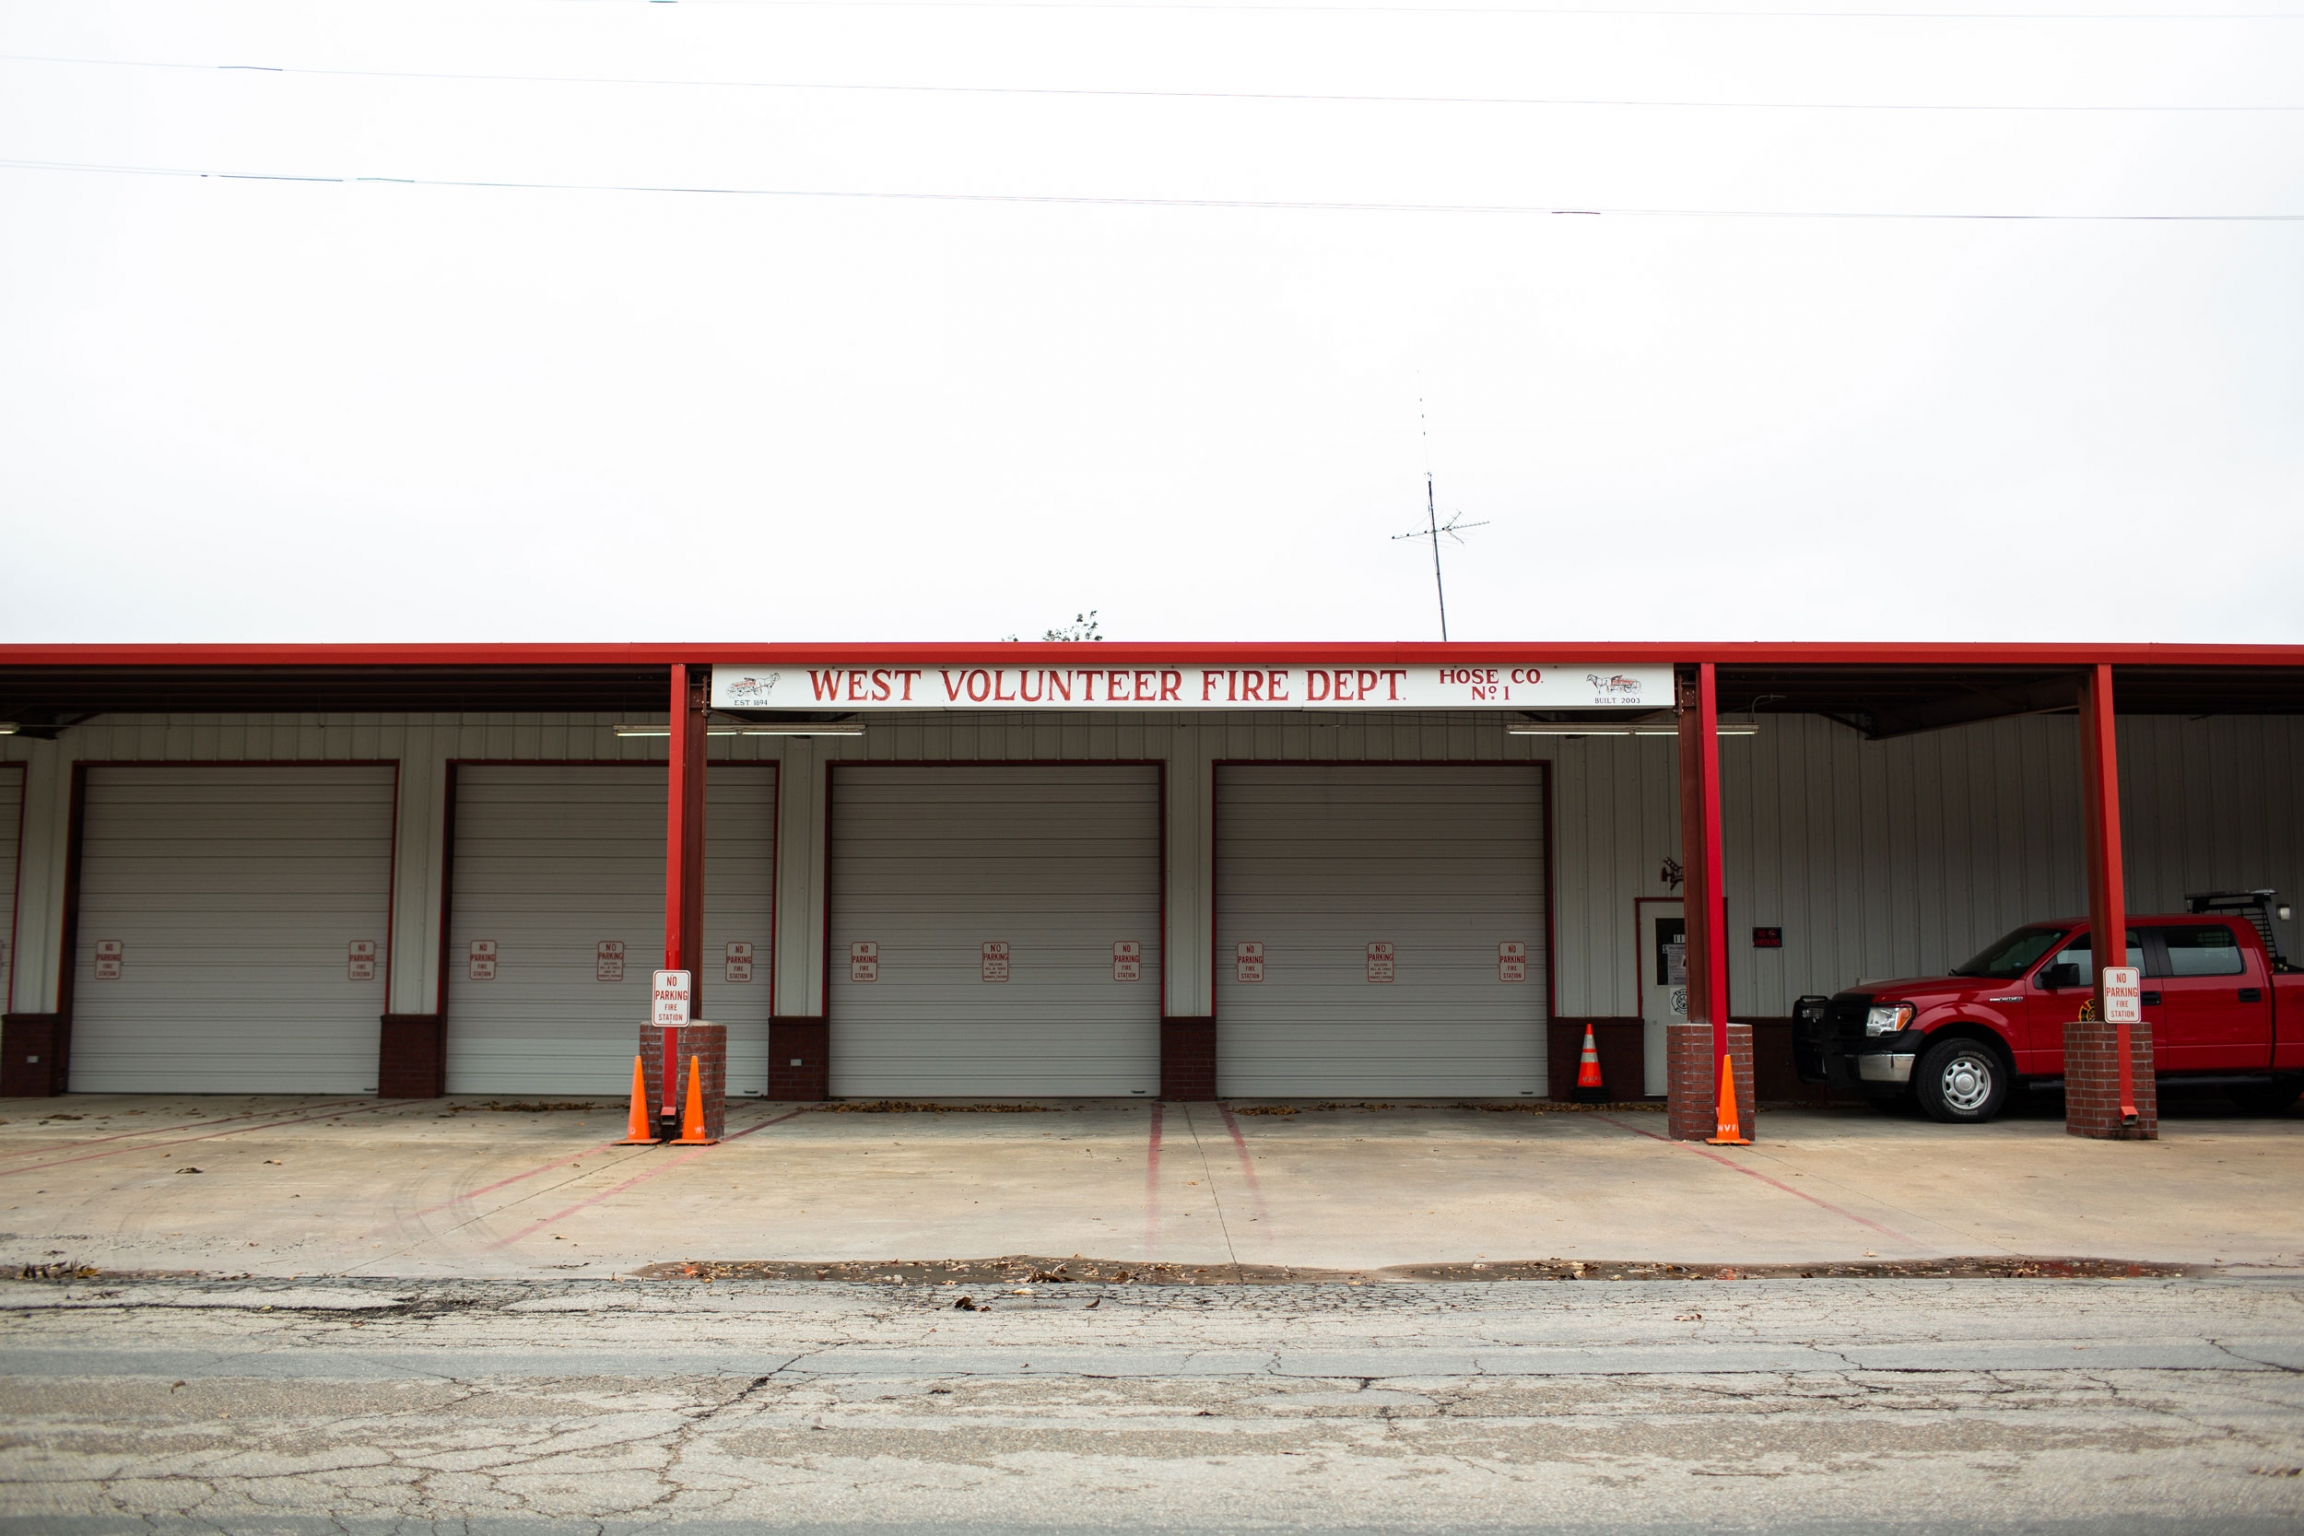 A four bay garage is shown with a red truck on one side.